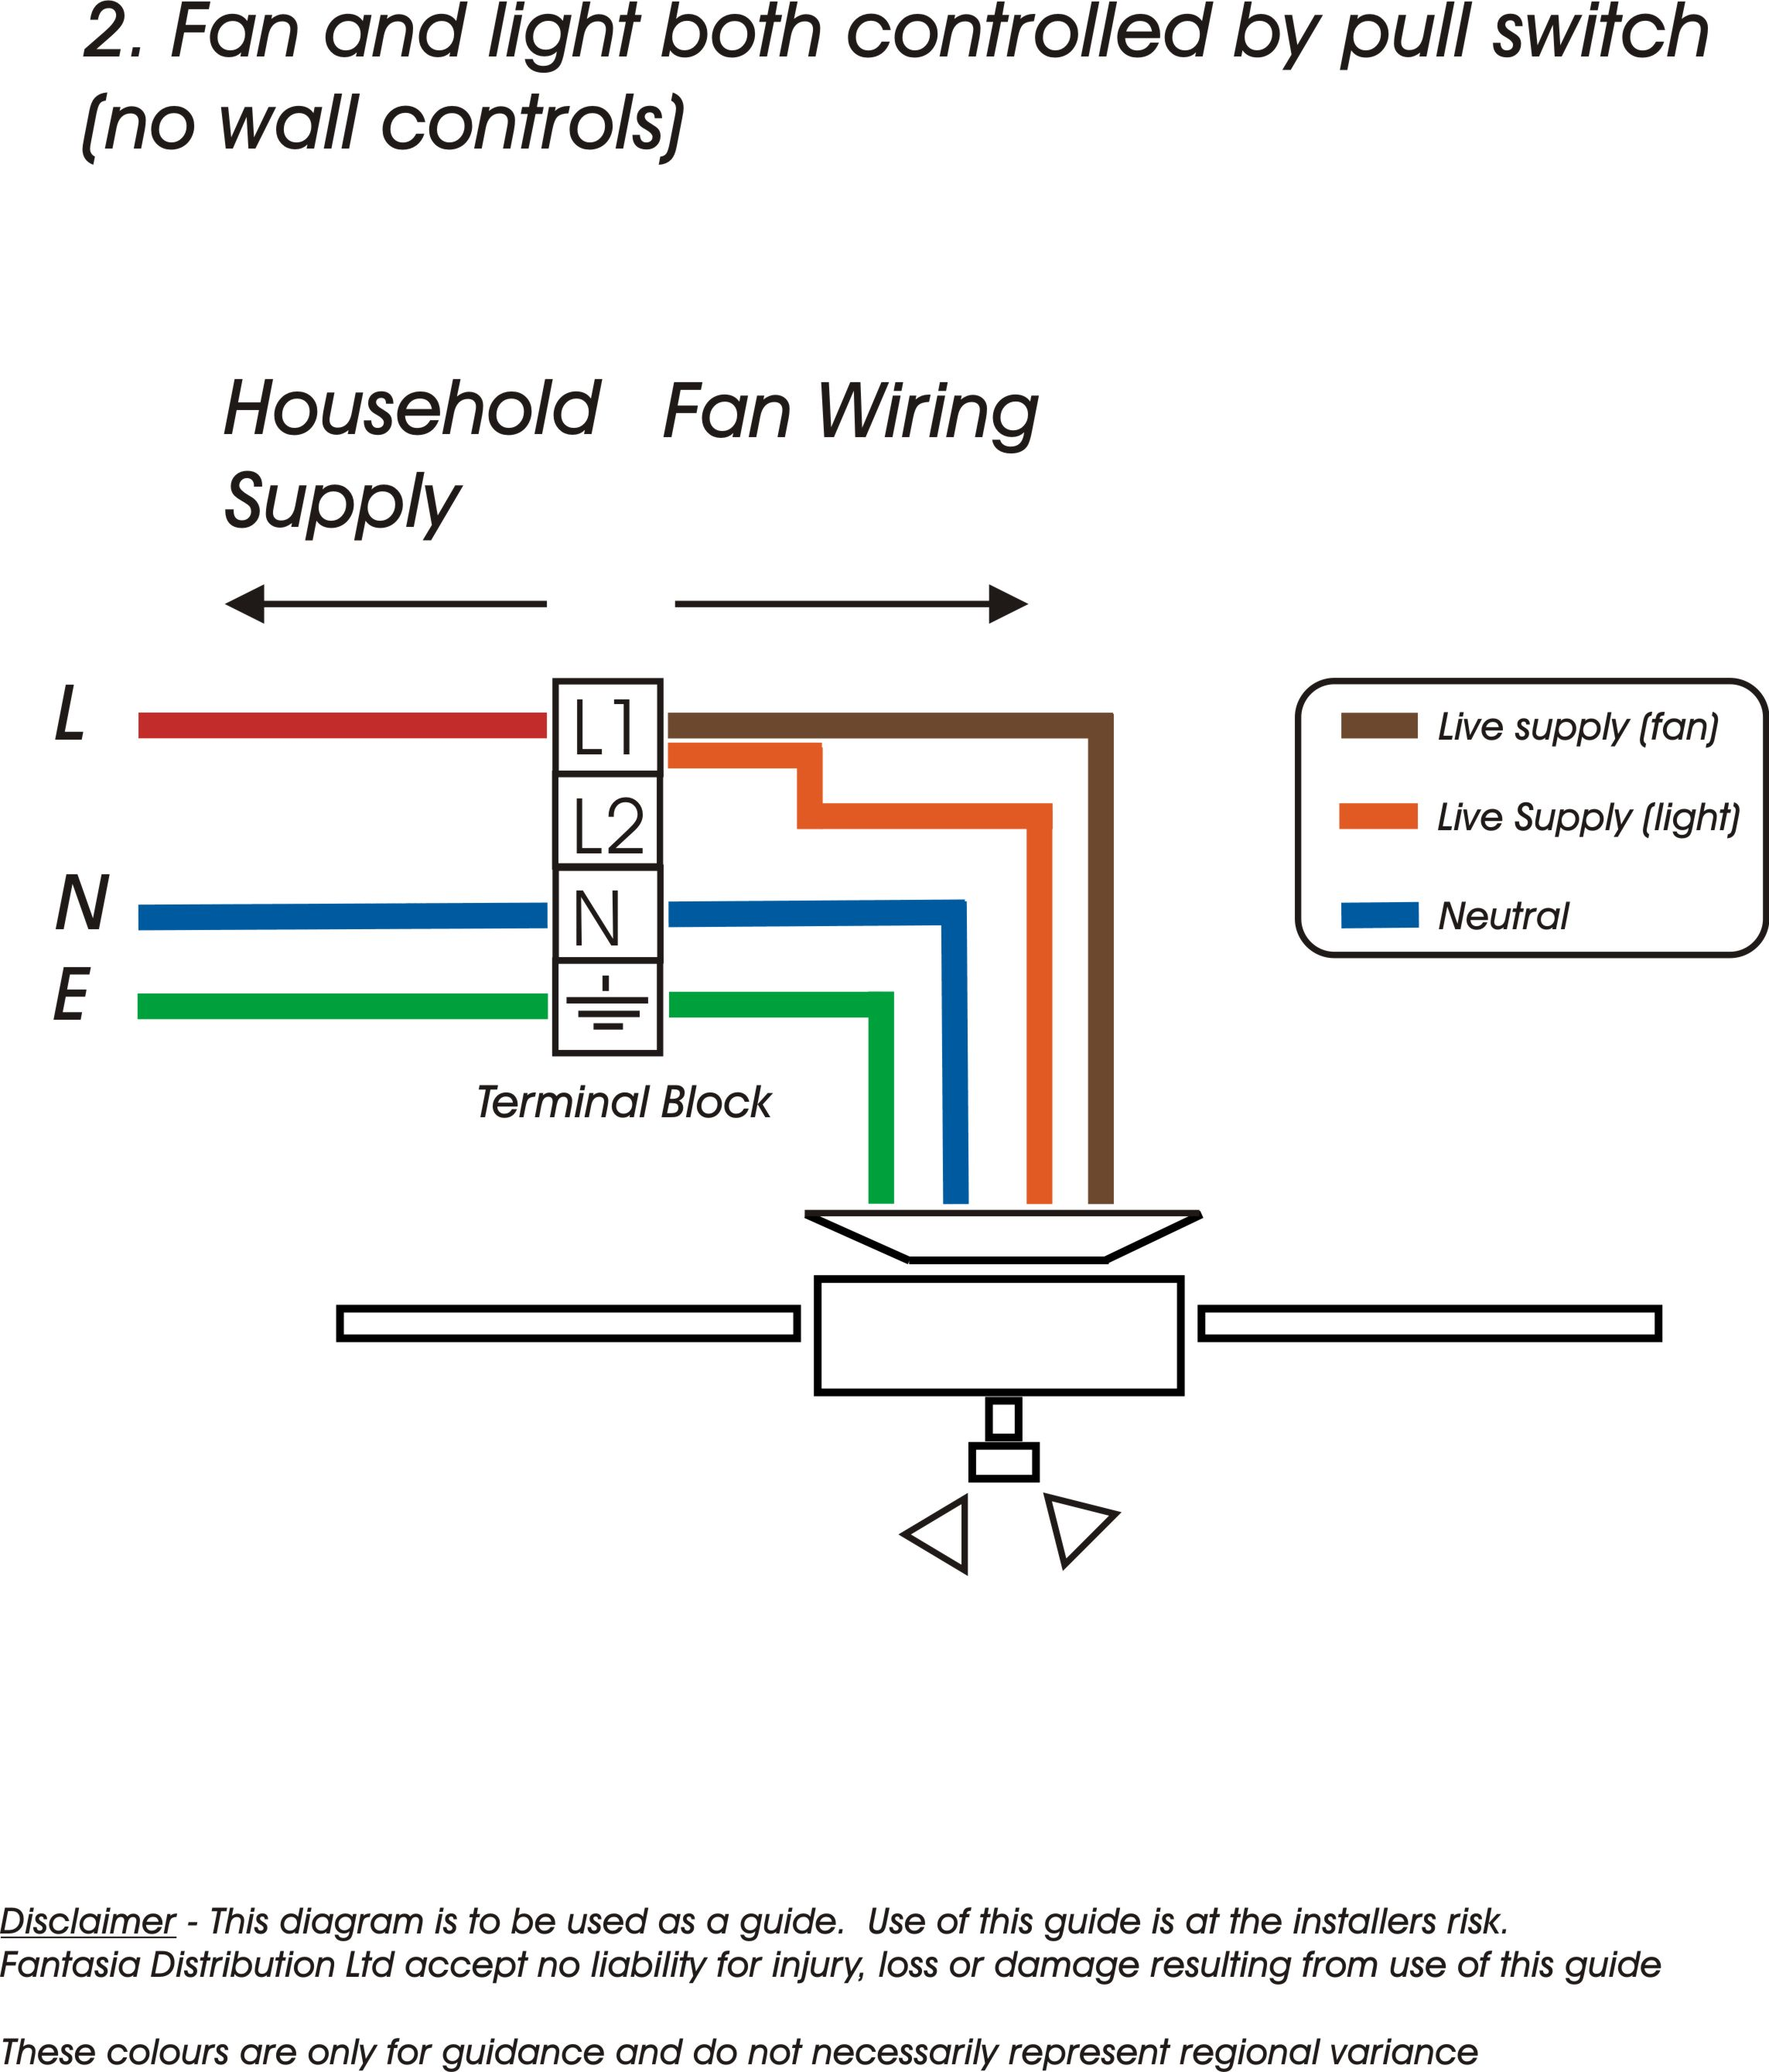 wiring ceiling fans 2 hampton bay ceiling fan motor wiring diagram integralbook com hunter ceiling fan wiring diagram red wire at mifinder.co